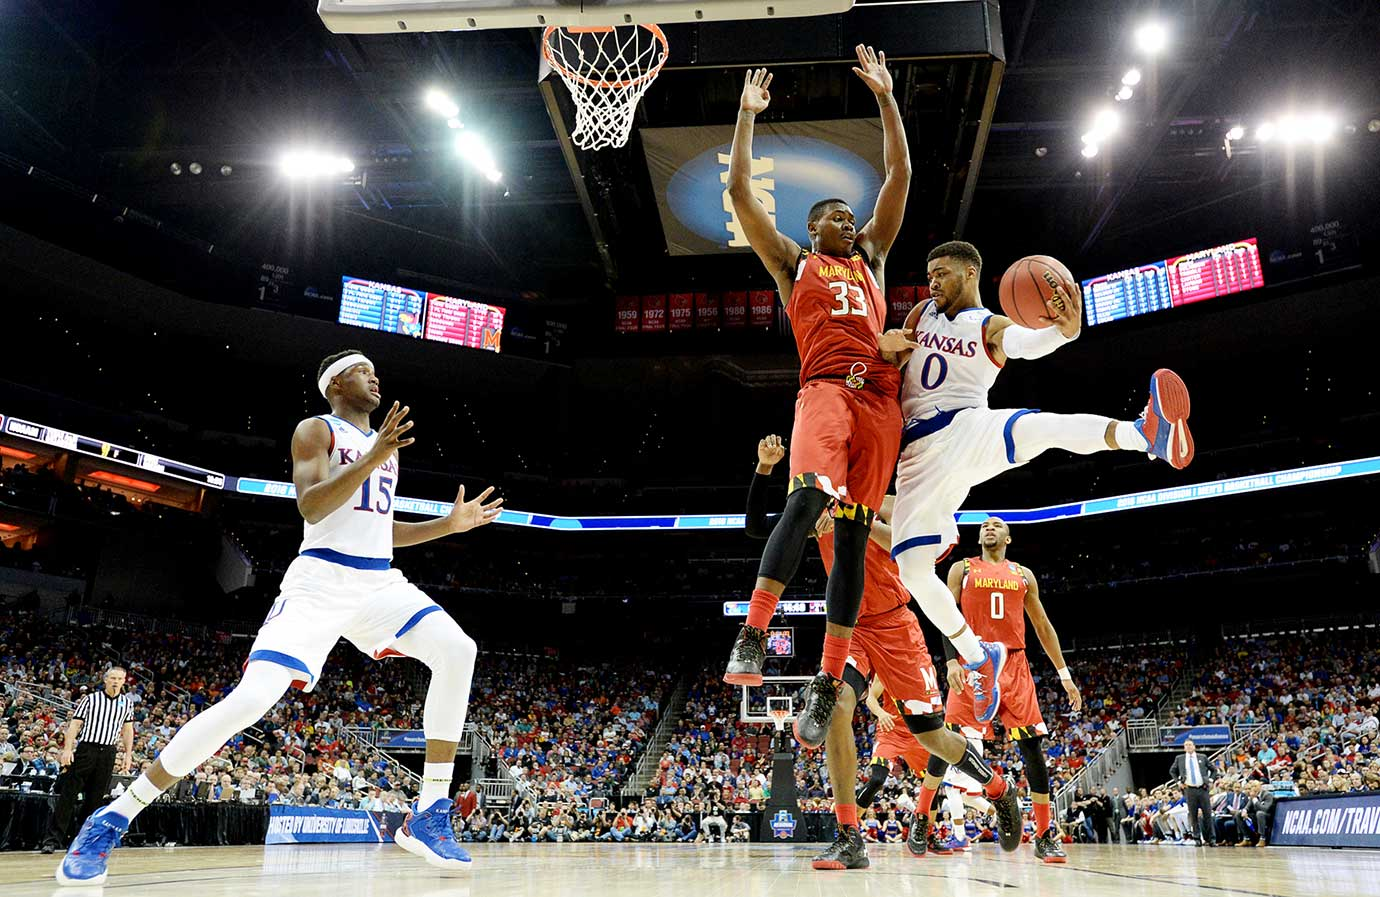 Here are some of the images that caught our eye on a night when Kansas, Oklahoma, Oregon and Villanova advanced to the Elite Eight of the NCAA Tournament. Pictured here, Frank Mason III of Kansas passes around Diamond Stone of Maryland.